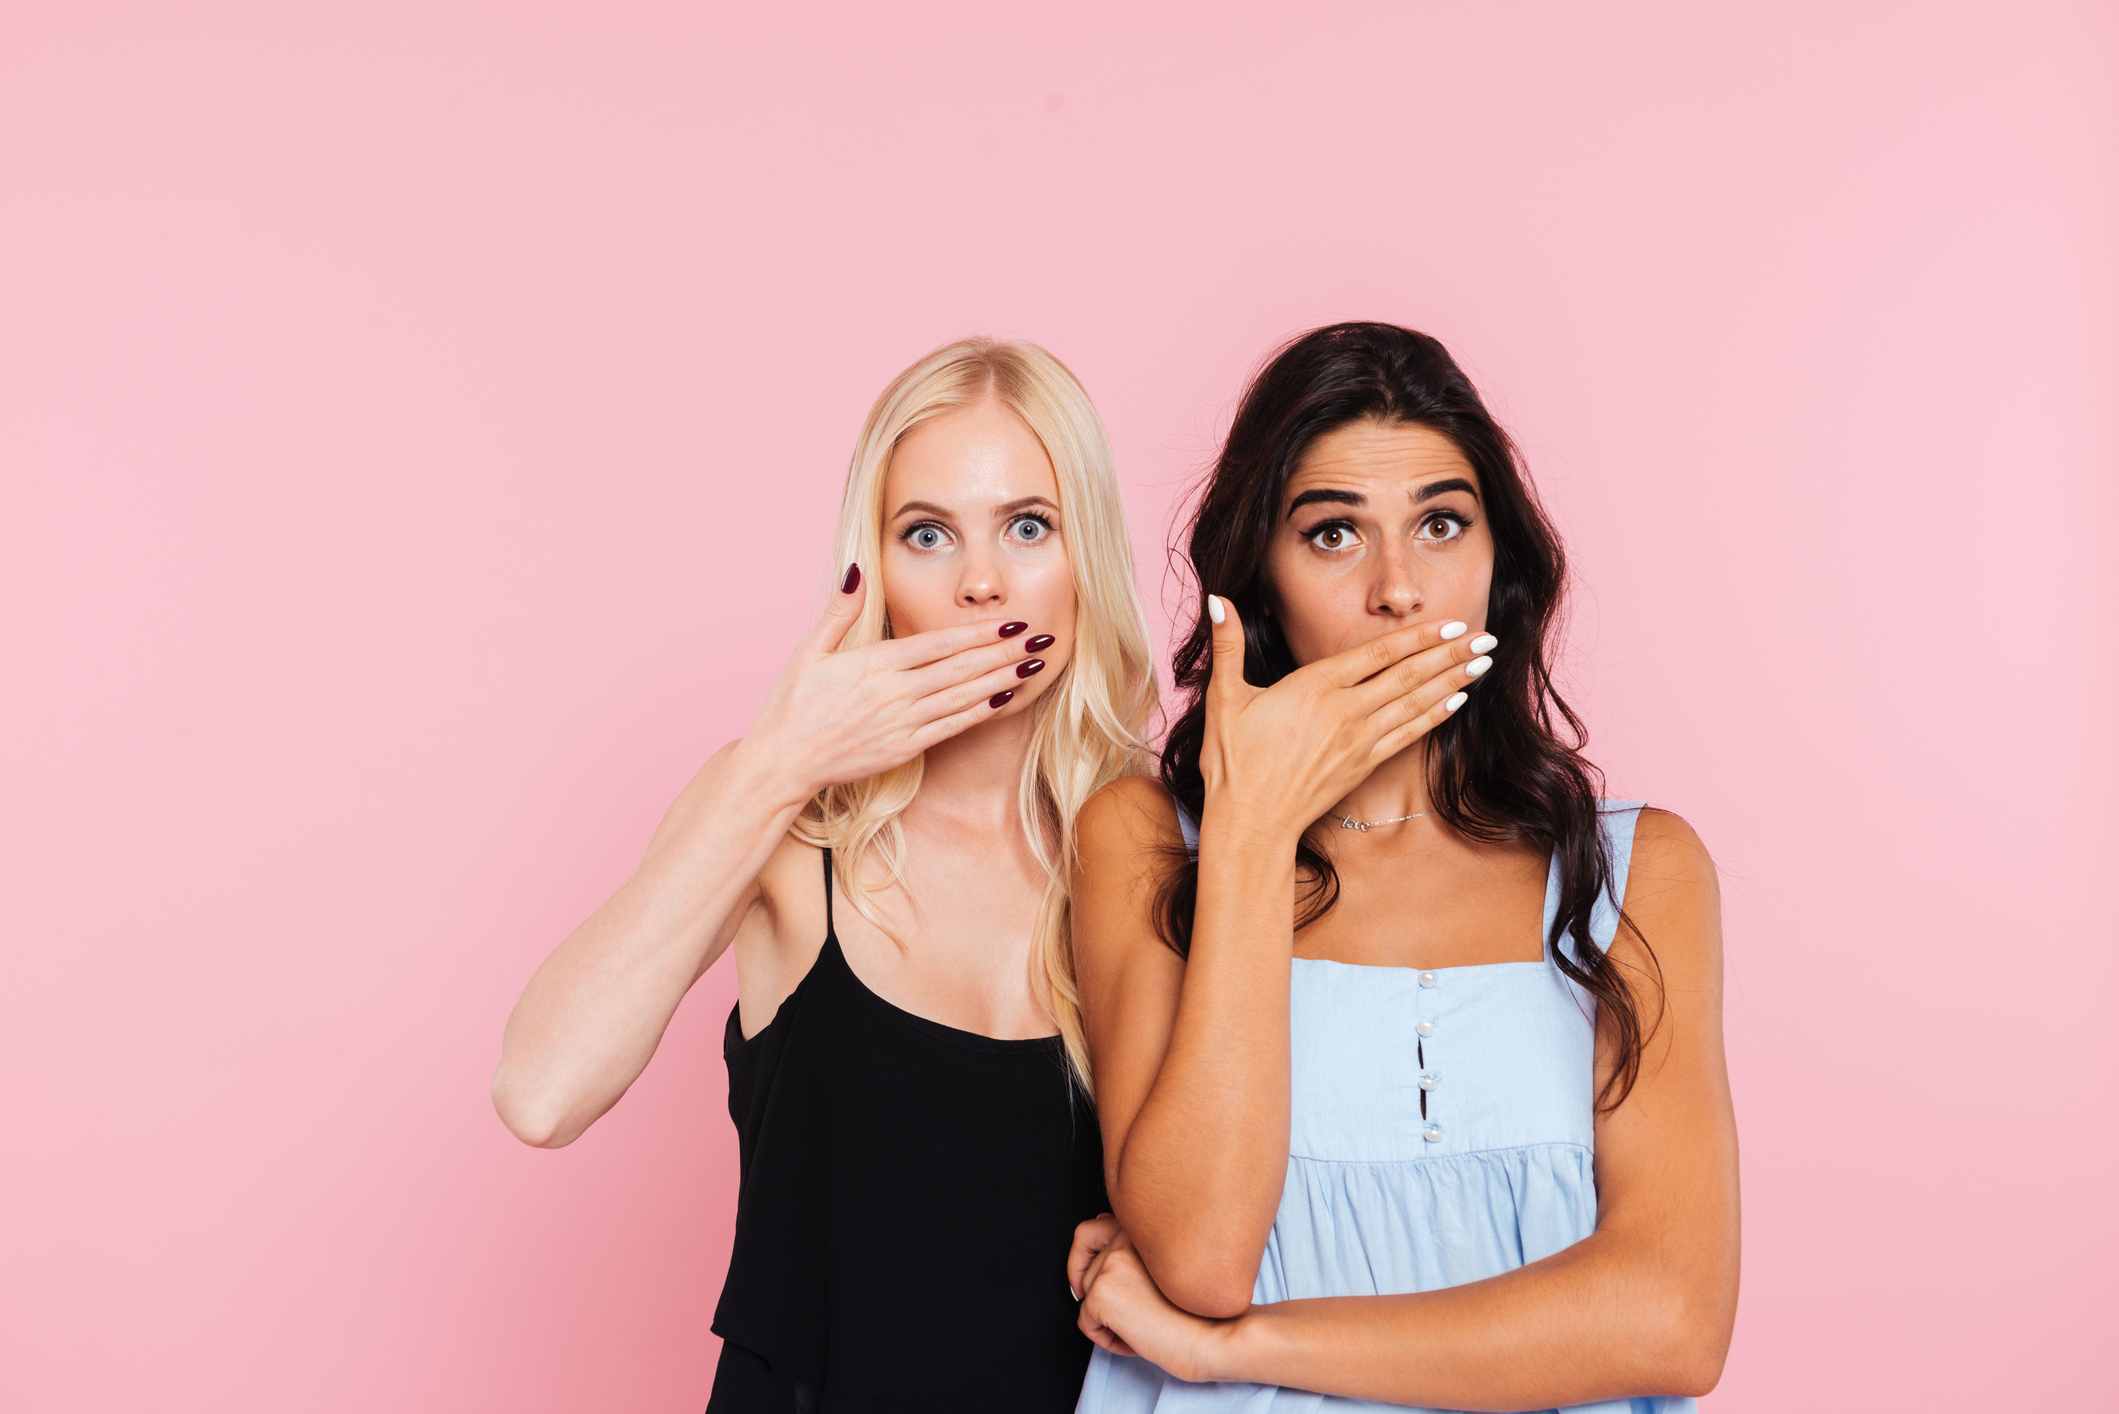 Two surprised women covering her mouths